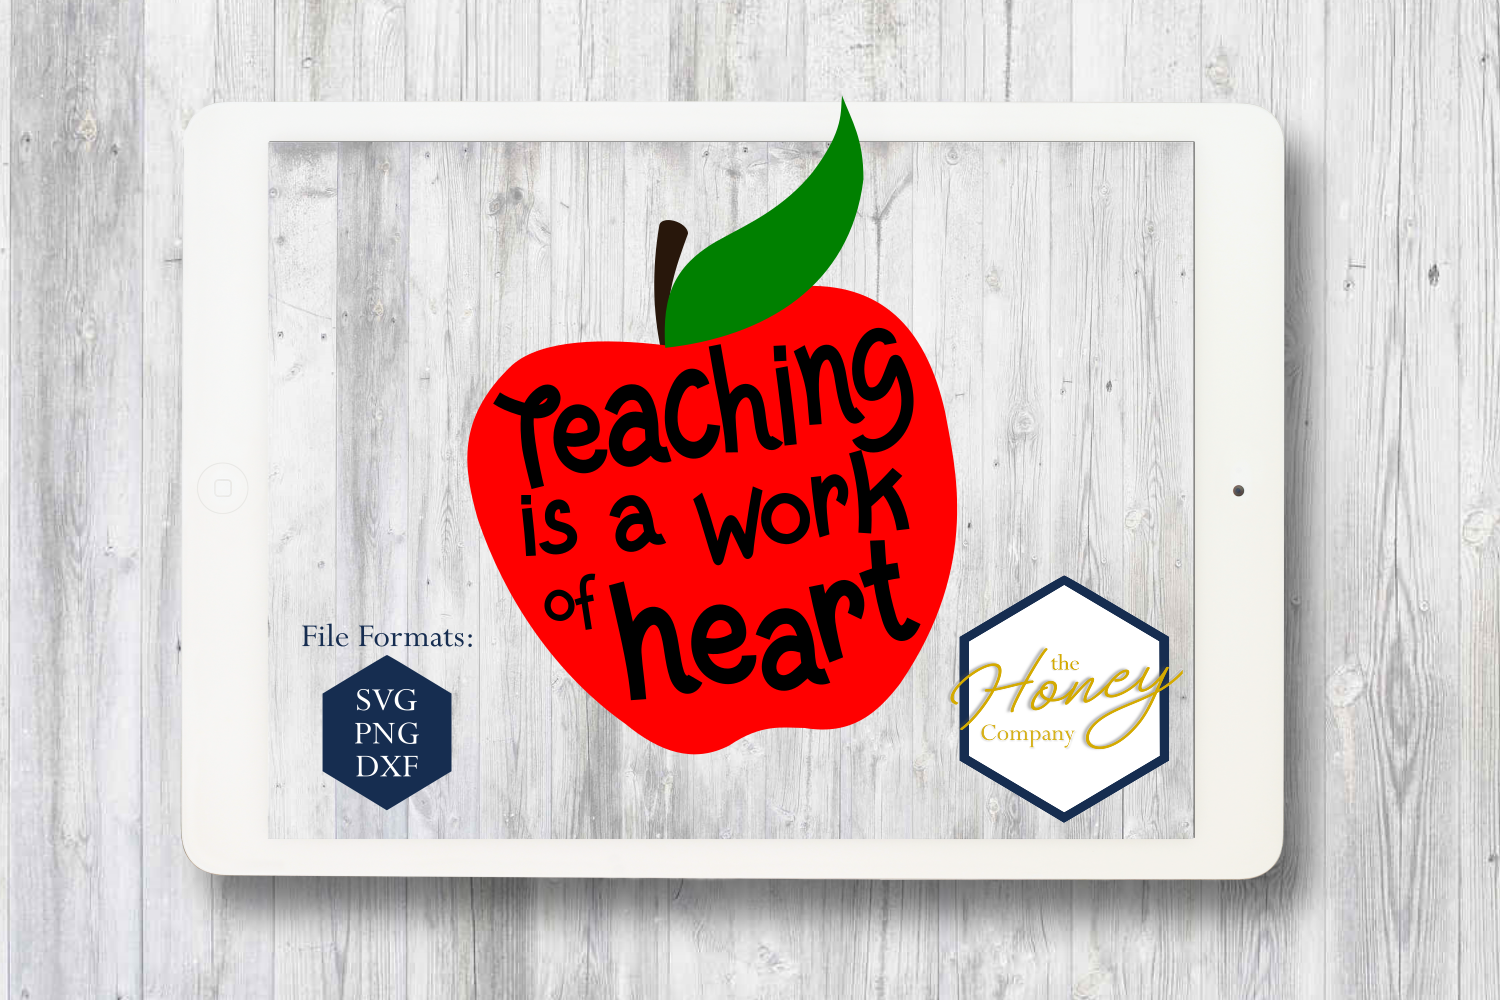 Download Free Teaching Is A Work Of Heart Cut File Vector Clipart Grafico Por for Cricut Explore, Silhouette and other cutting machines.